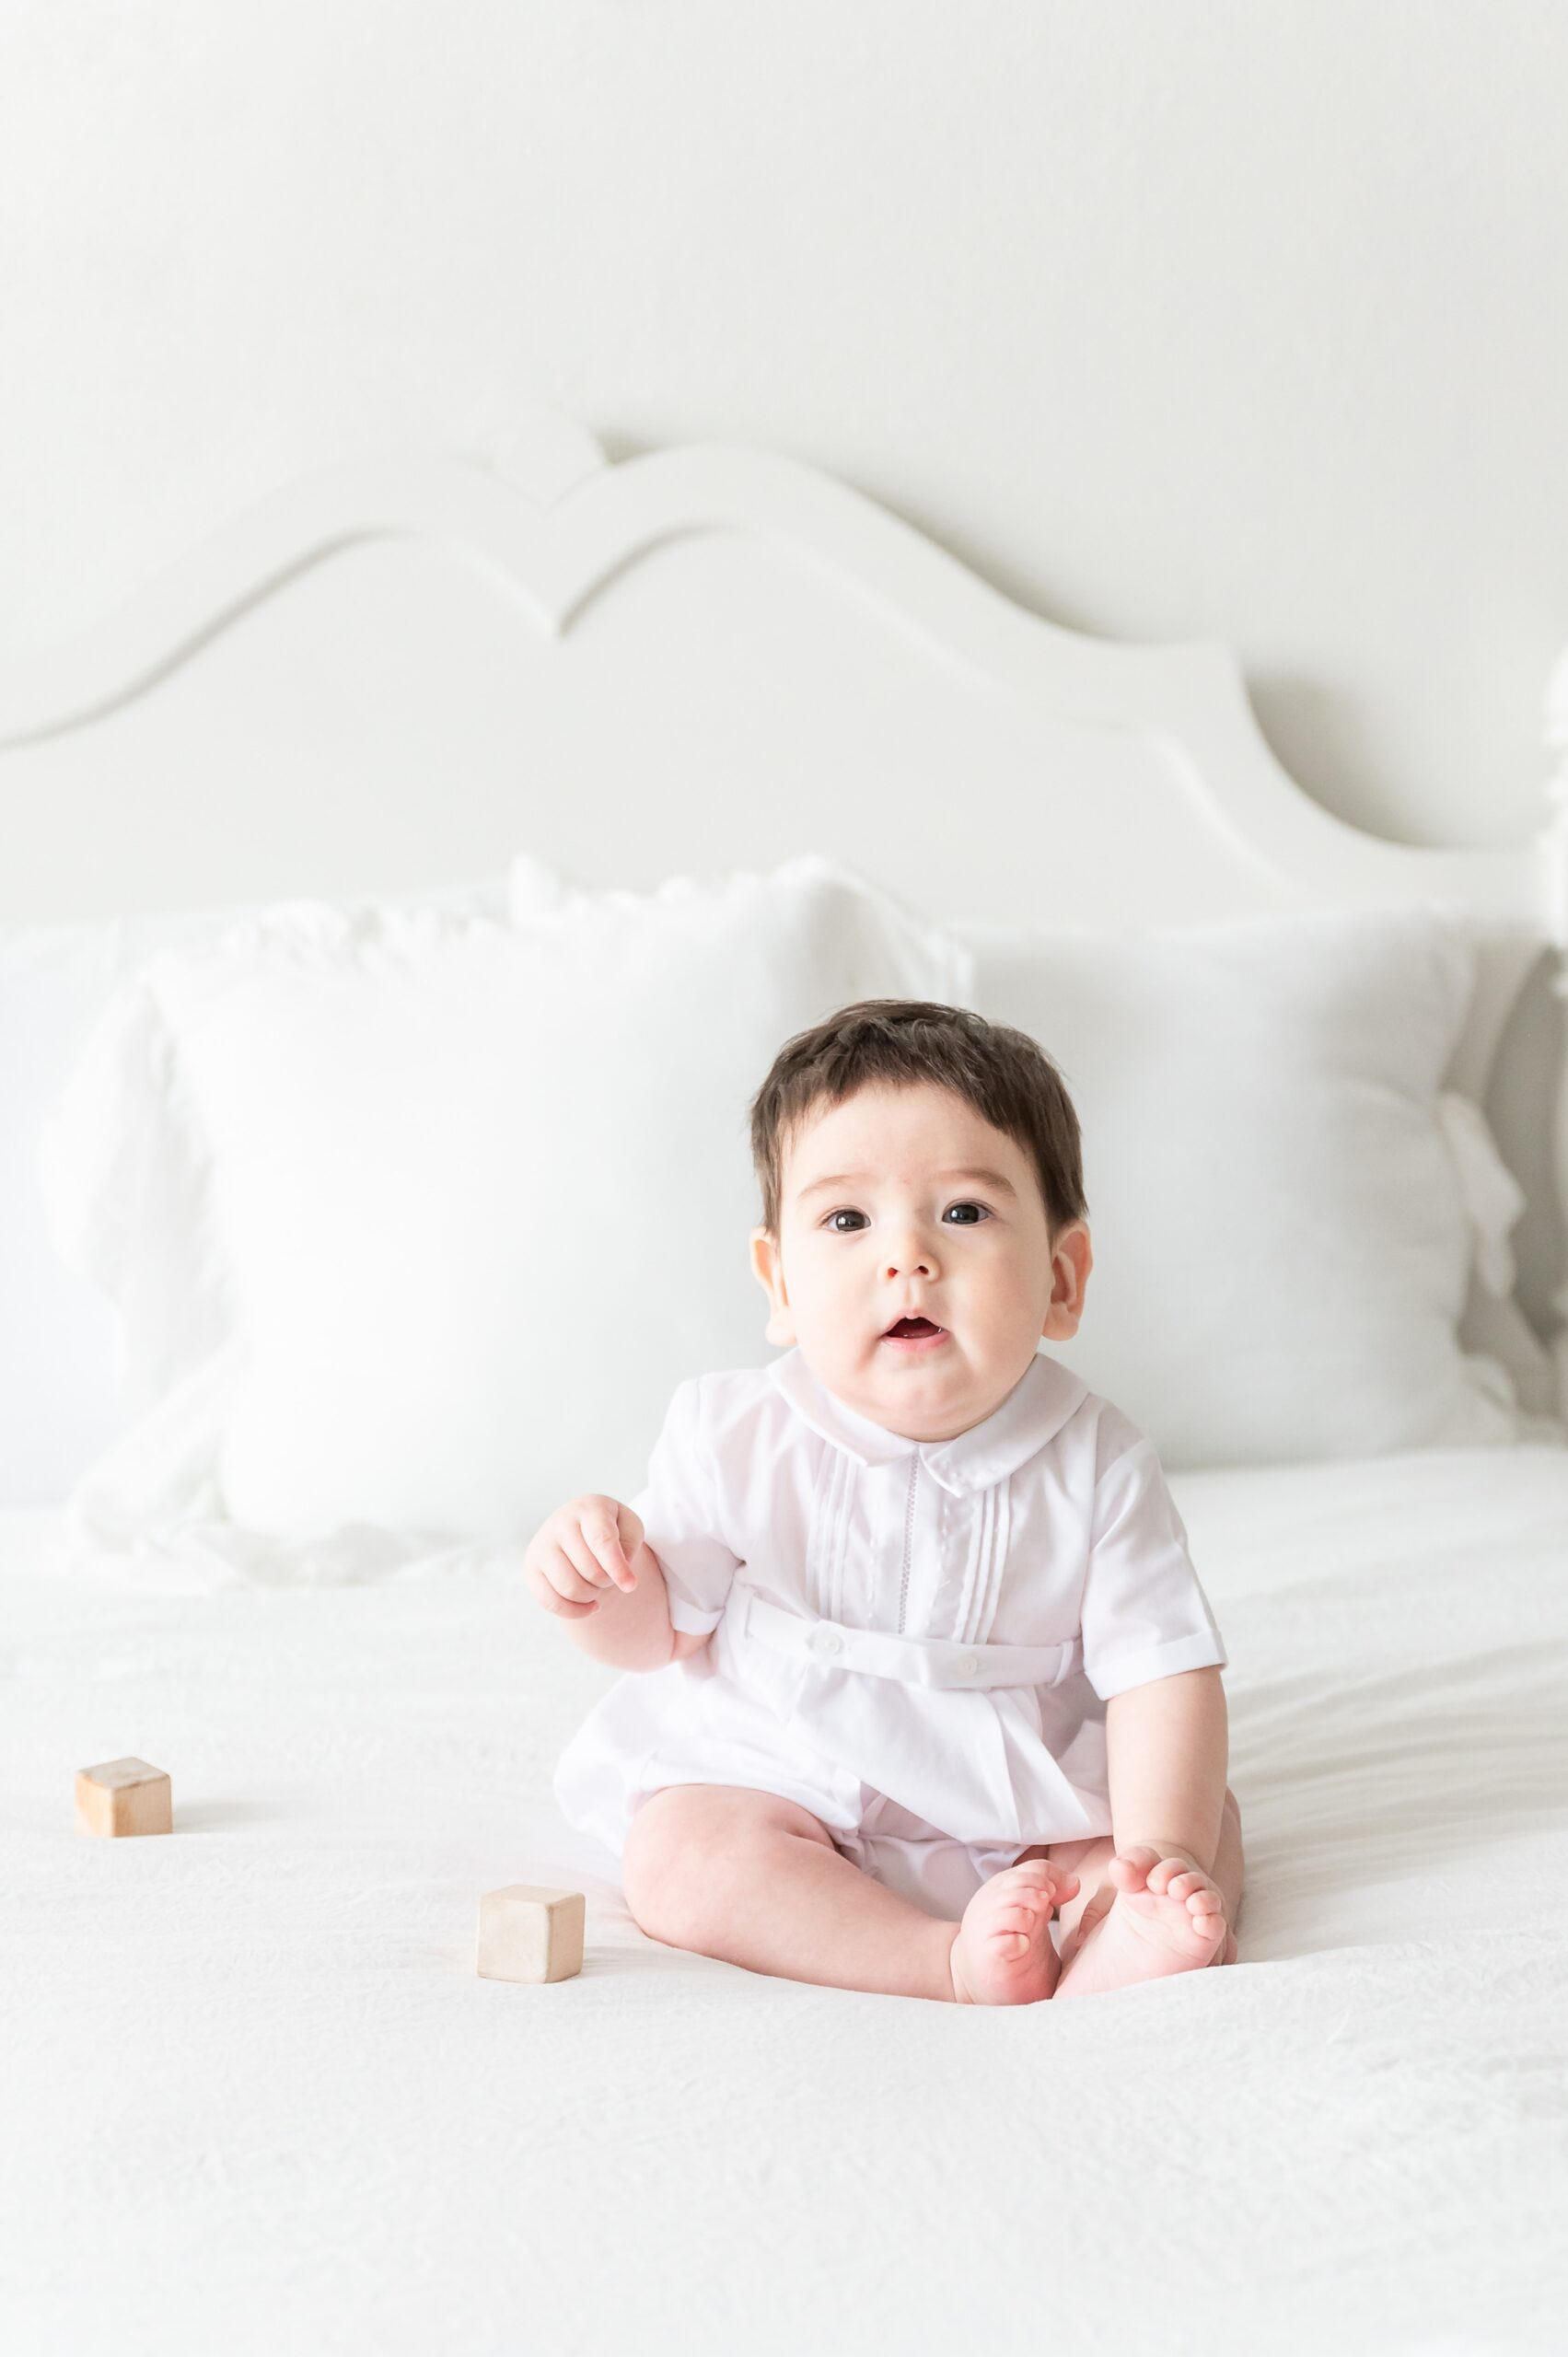 Baby boy in Feltman Brothers outfit during sitter milestone session. Photo by Aimee Hamilton Photography